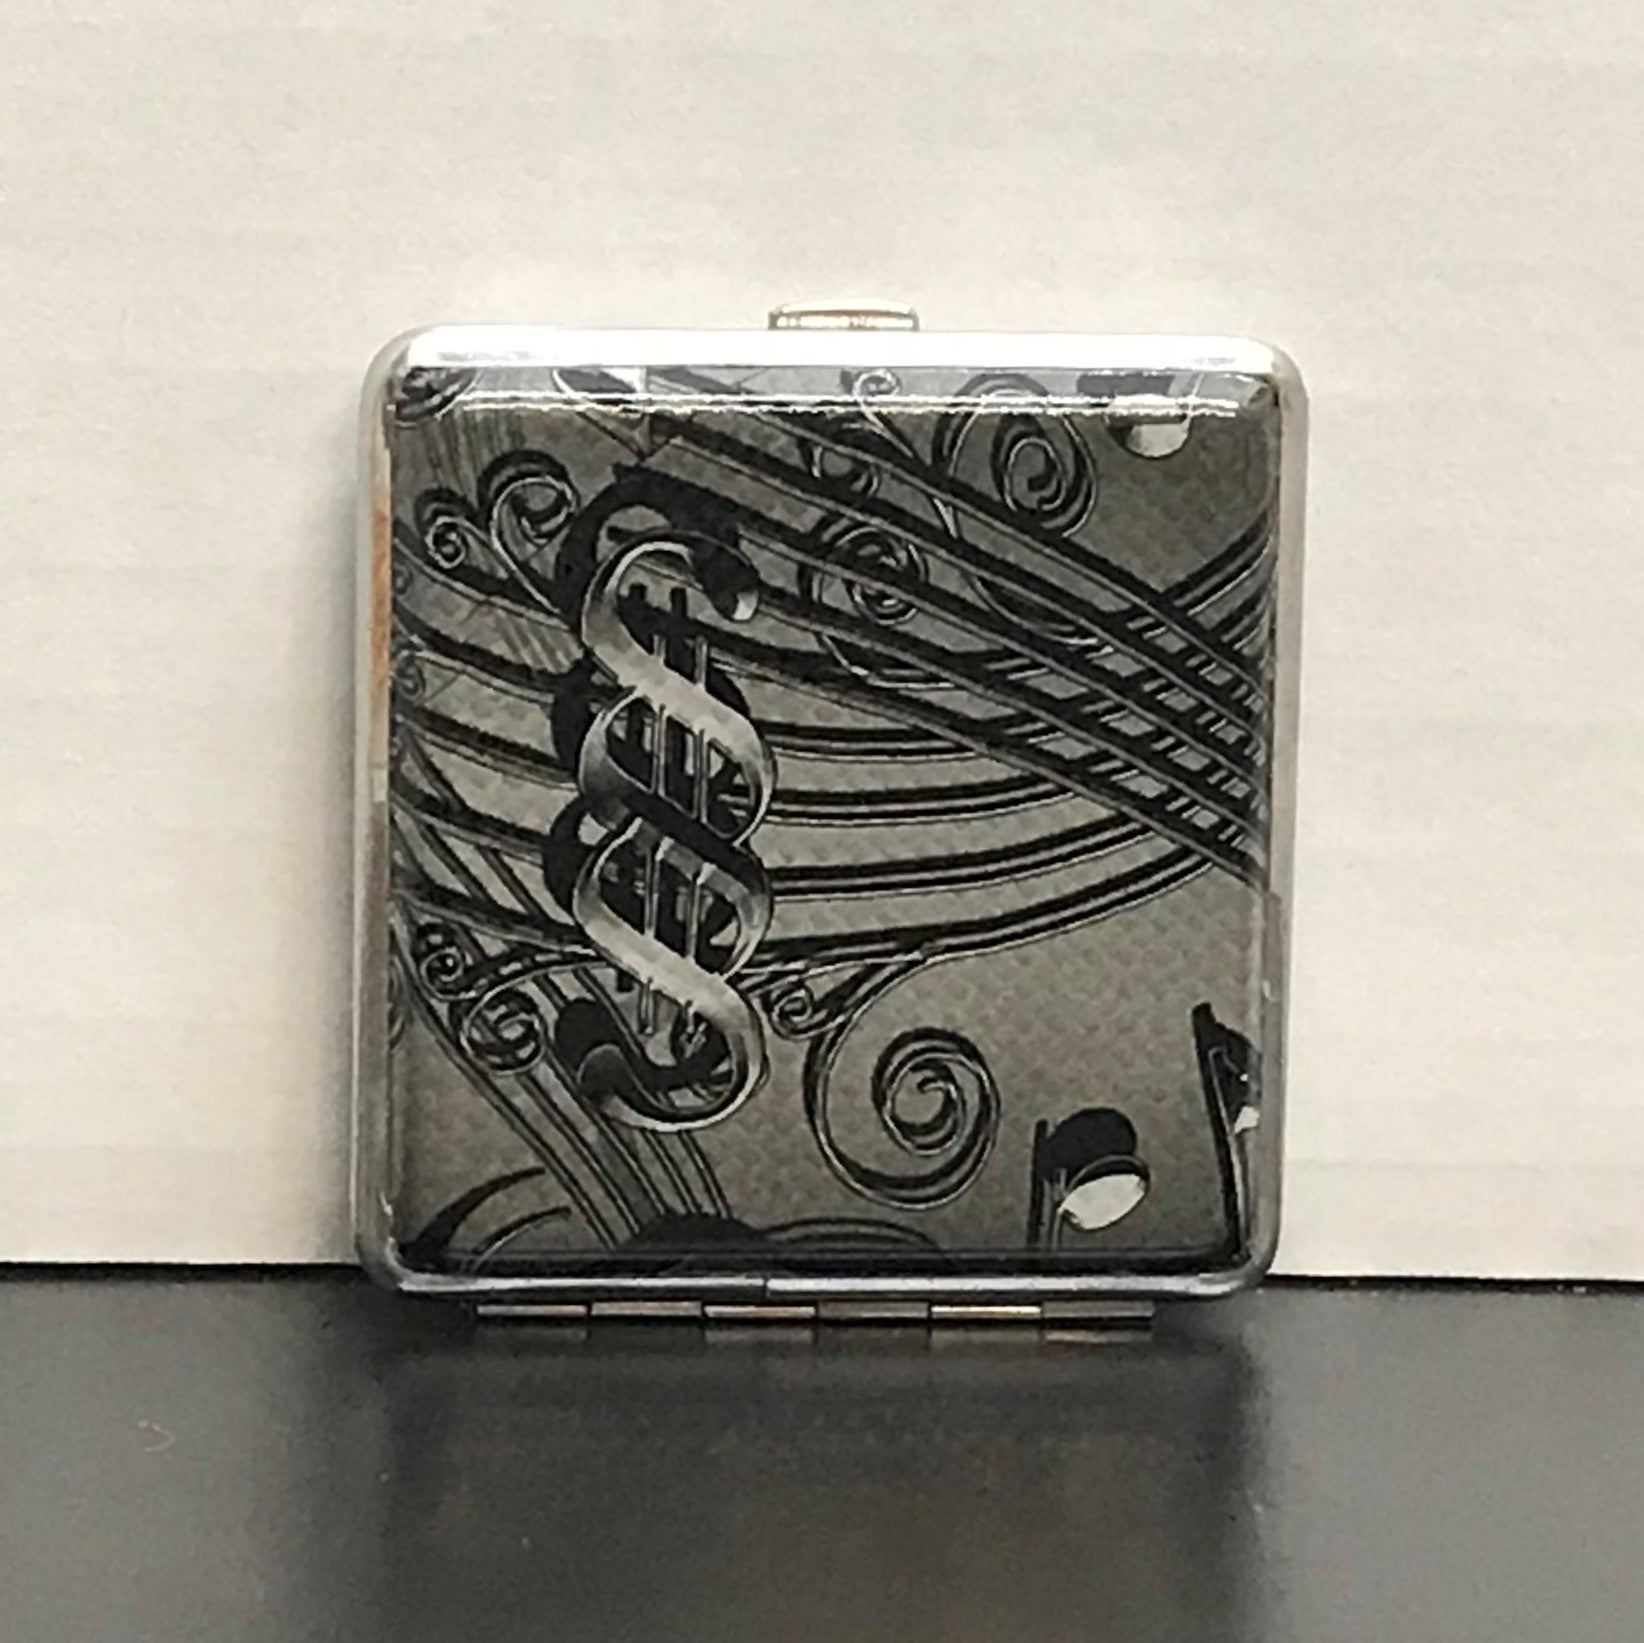 Cigarette Case - Sound of Money